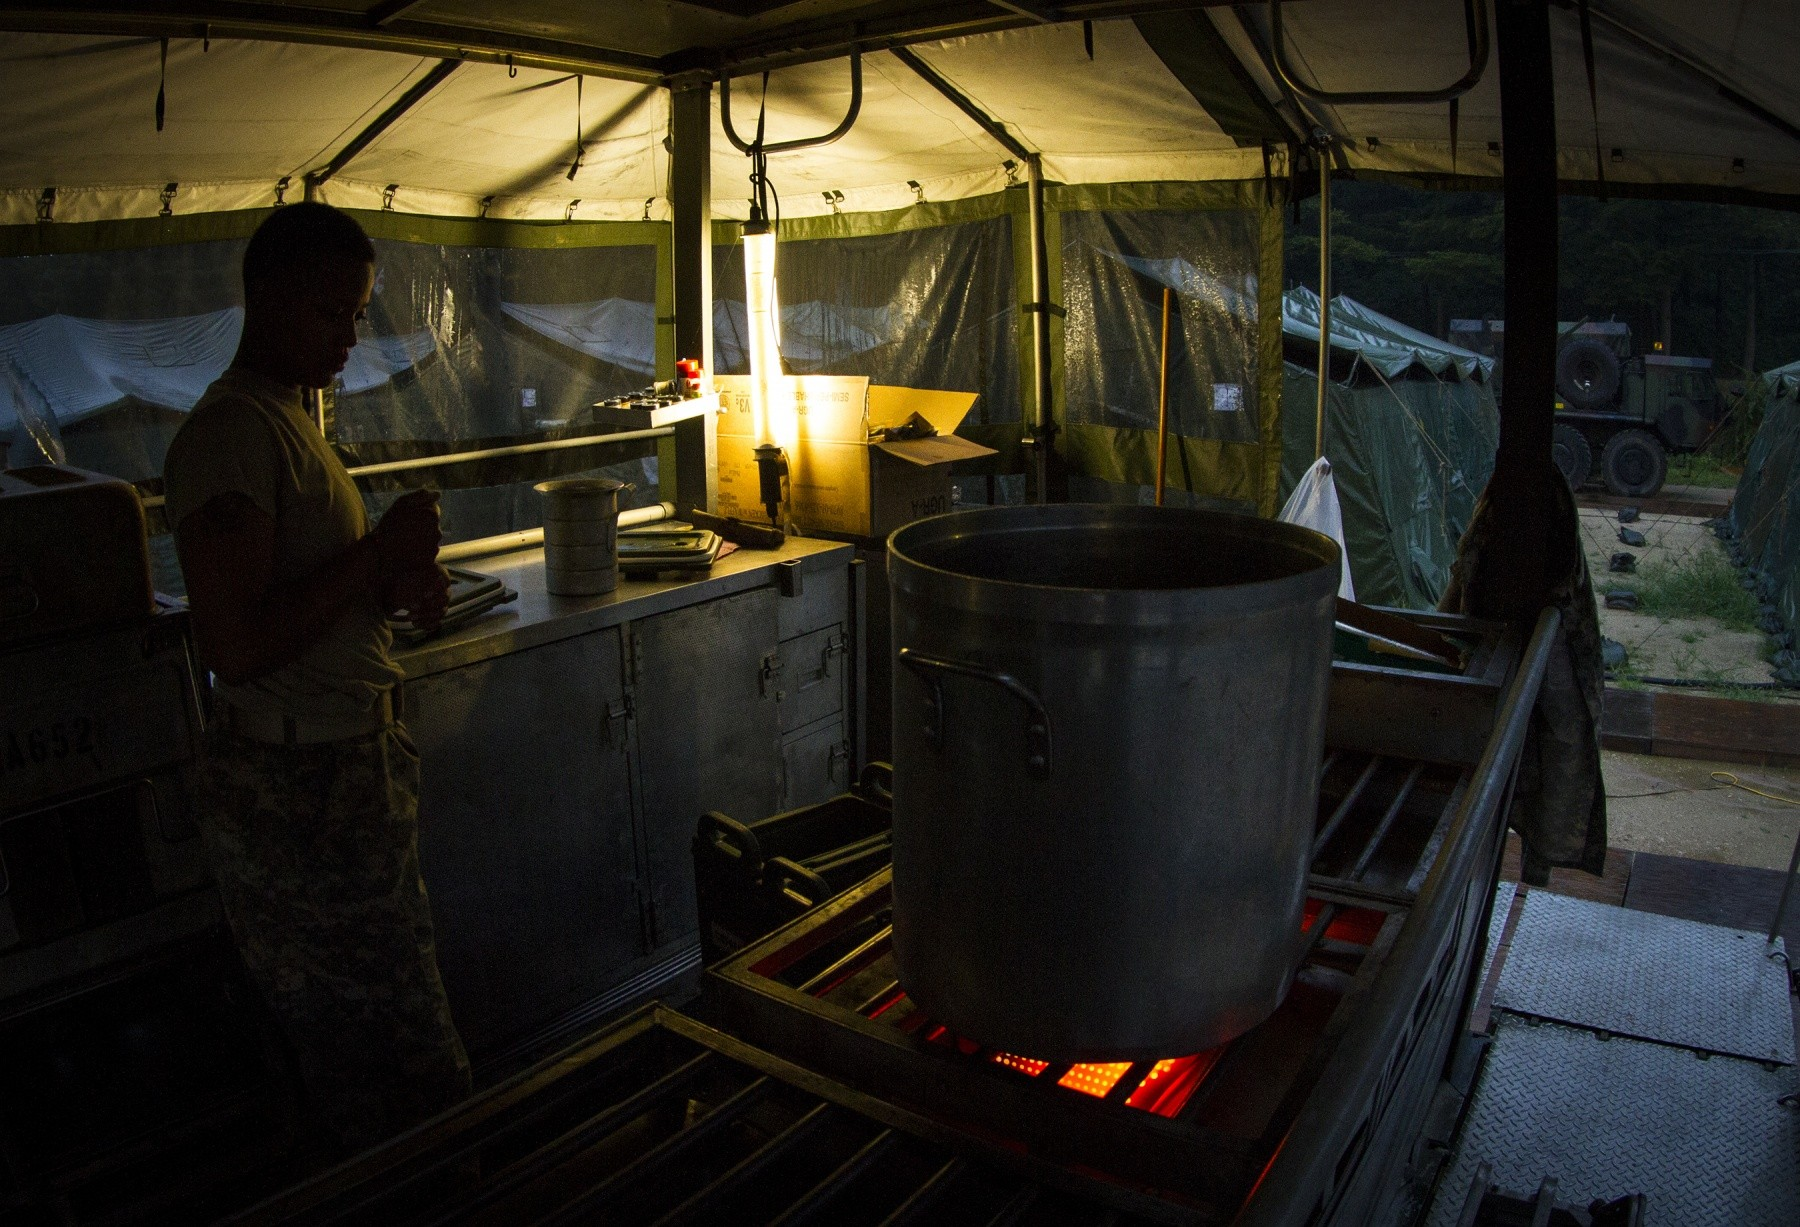 Army cook in Korea | Article | The United States Army